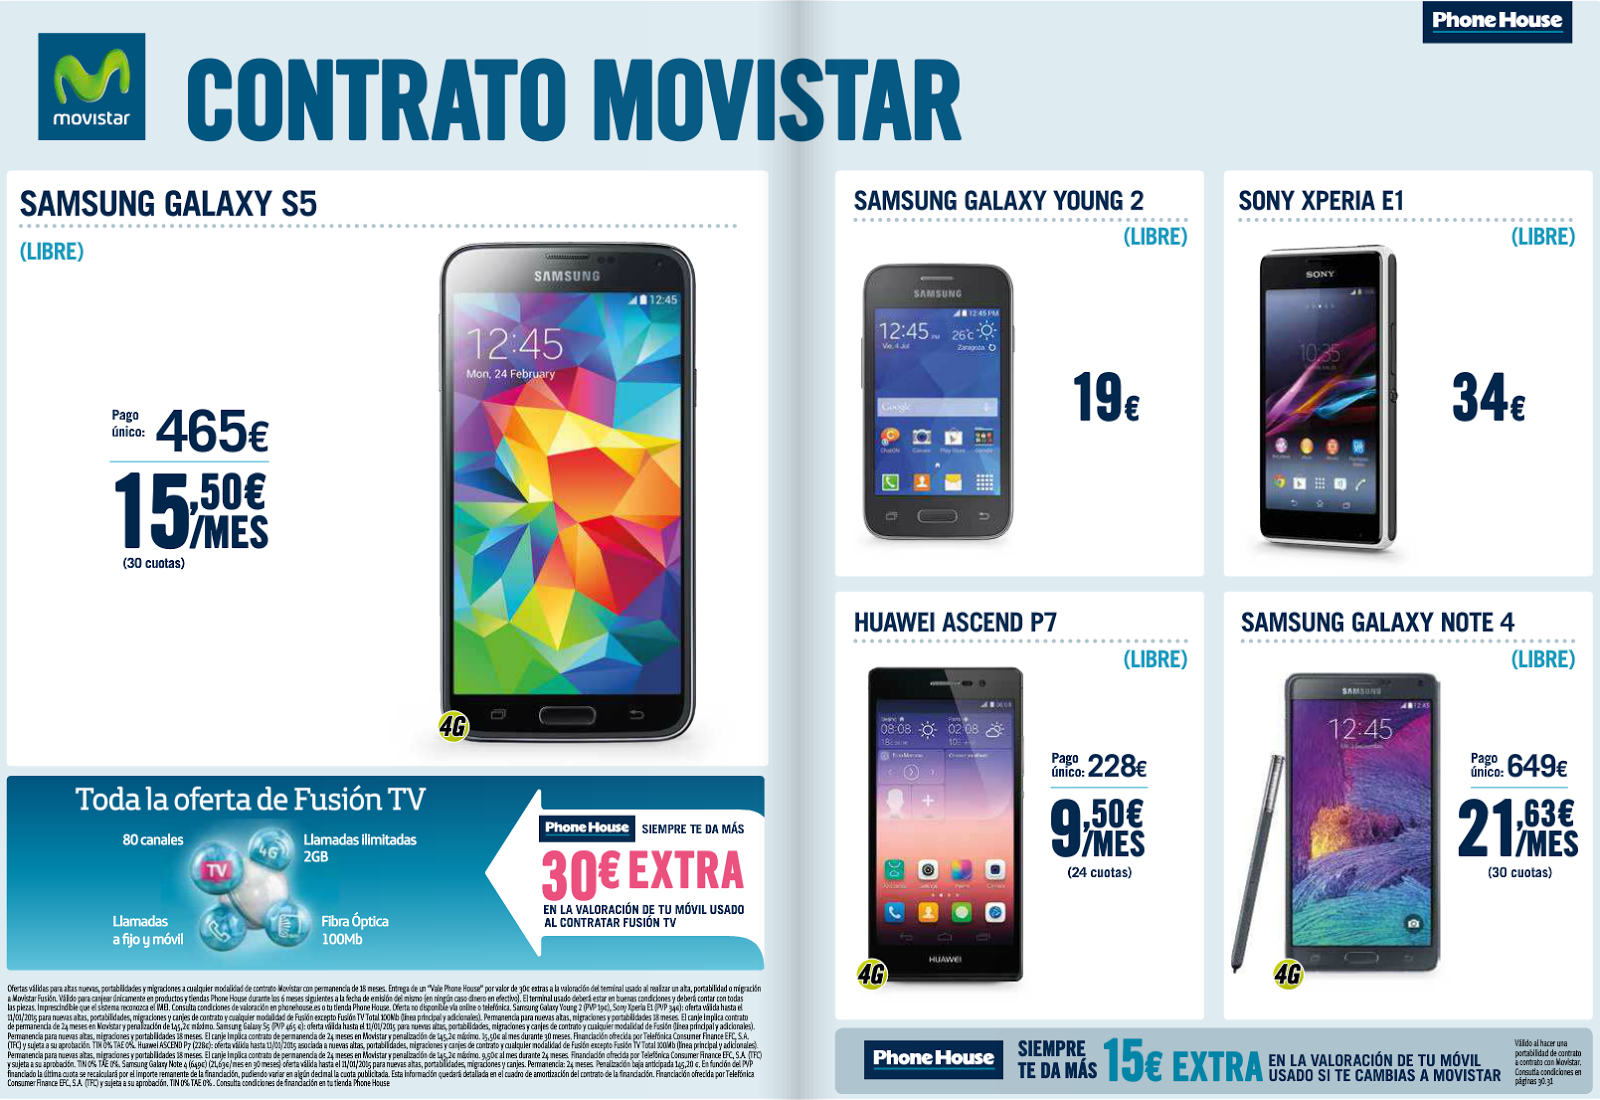 Movistar Smartphones Libres Phonehouse Sur Ingenia Mobile